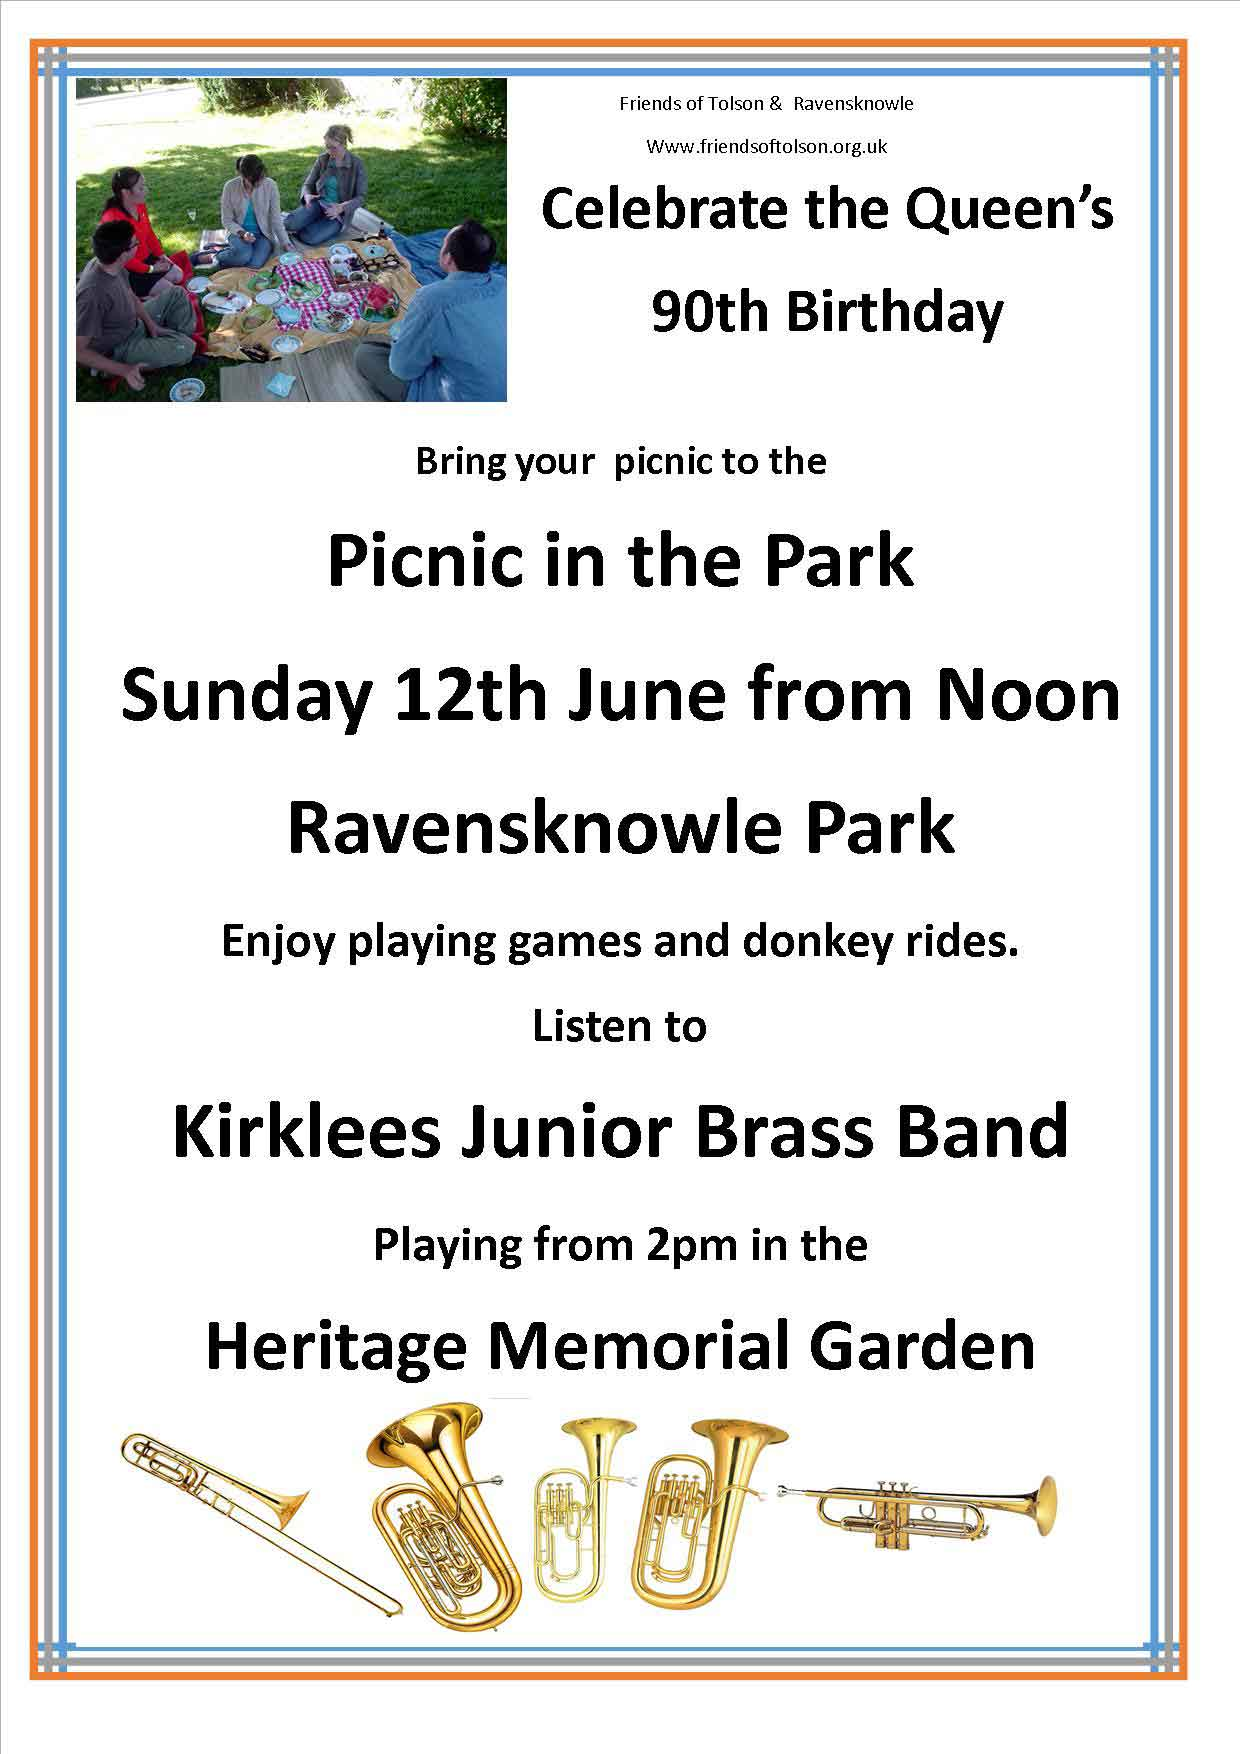 Celebrate the Queen's 90th Birthday - Picnic in the Park